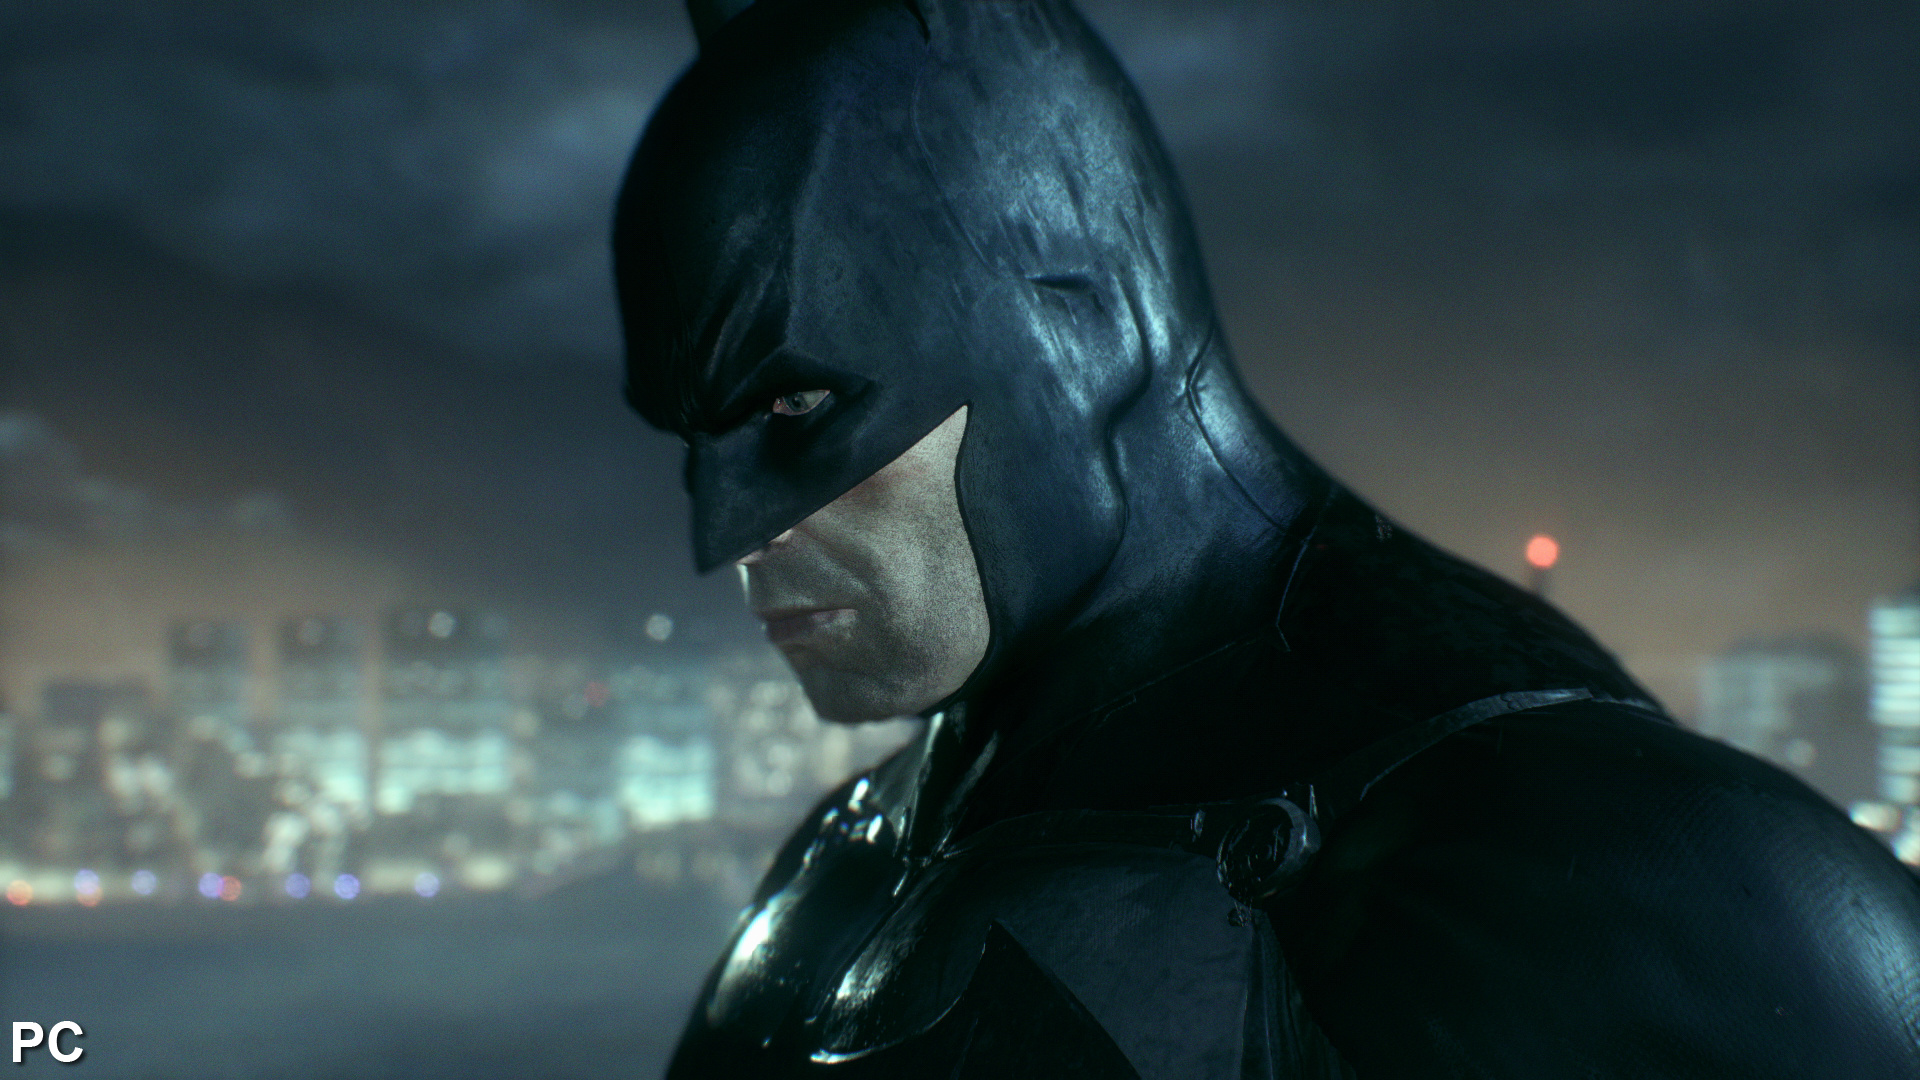 It gets worse - Batman: Arkham Knight on PC lacks console visual features